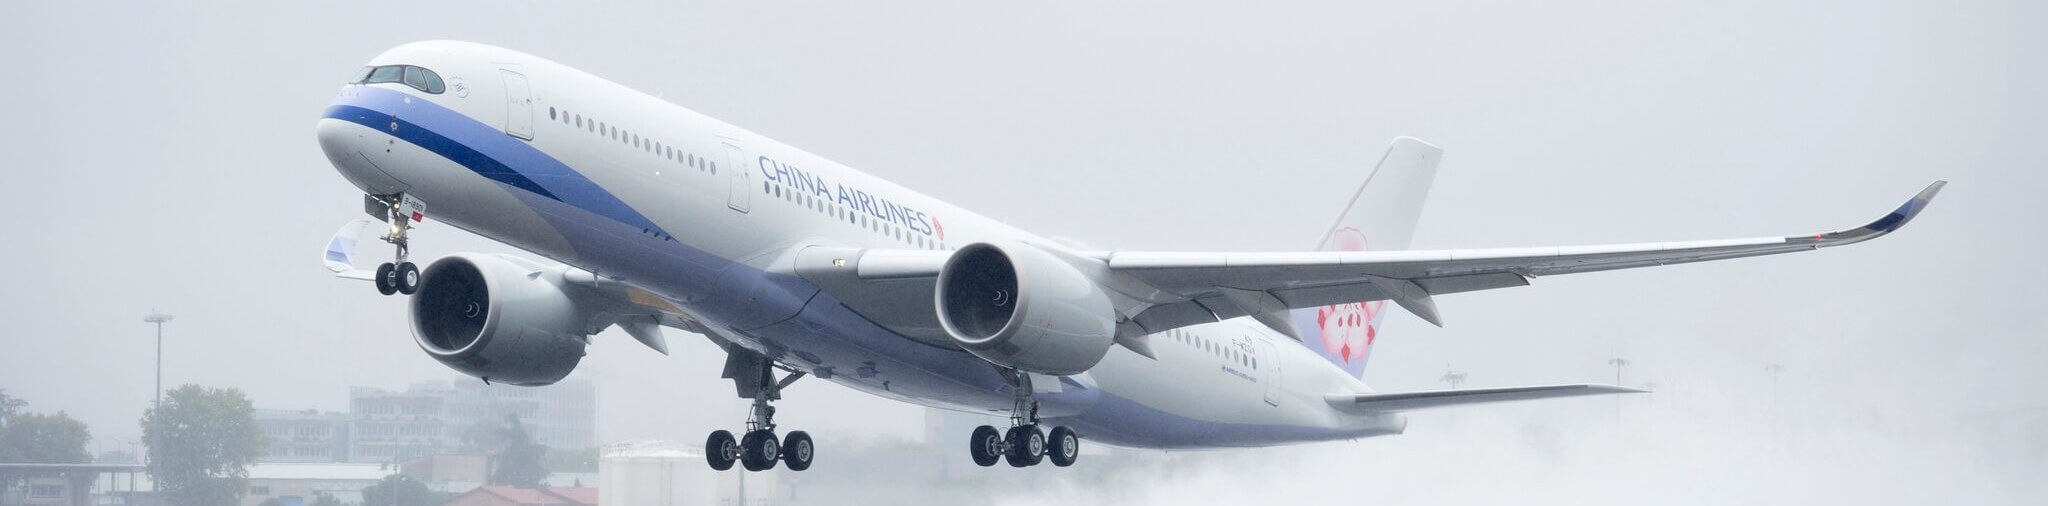 China Airlines selects Pratt & Whitney to power 30 A321neo